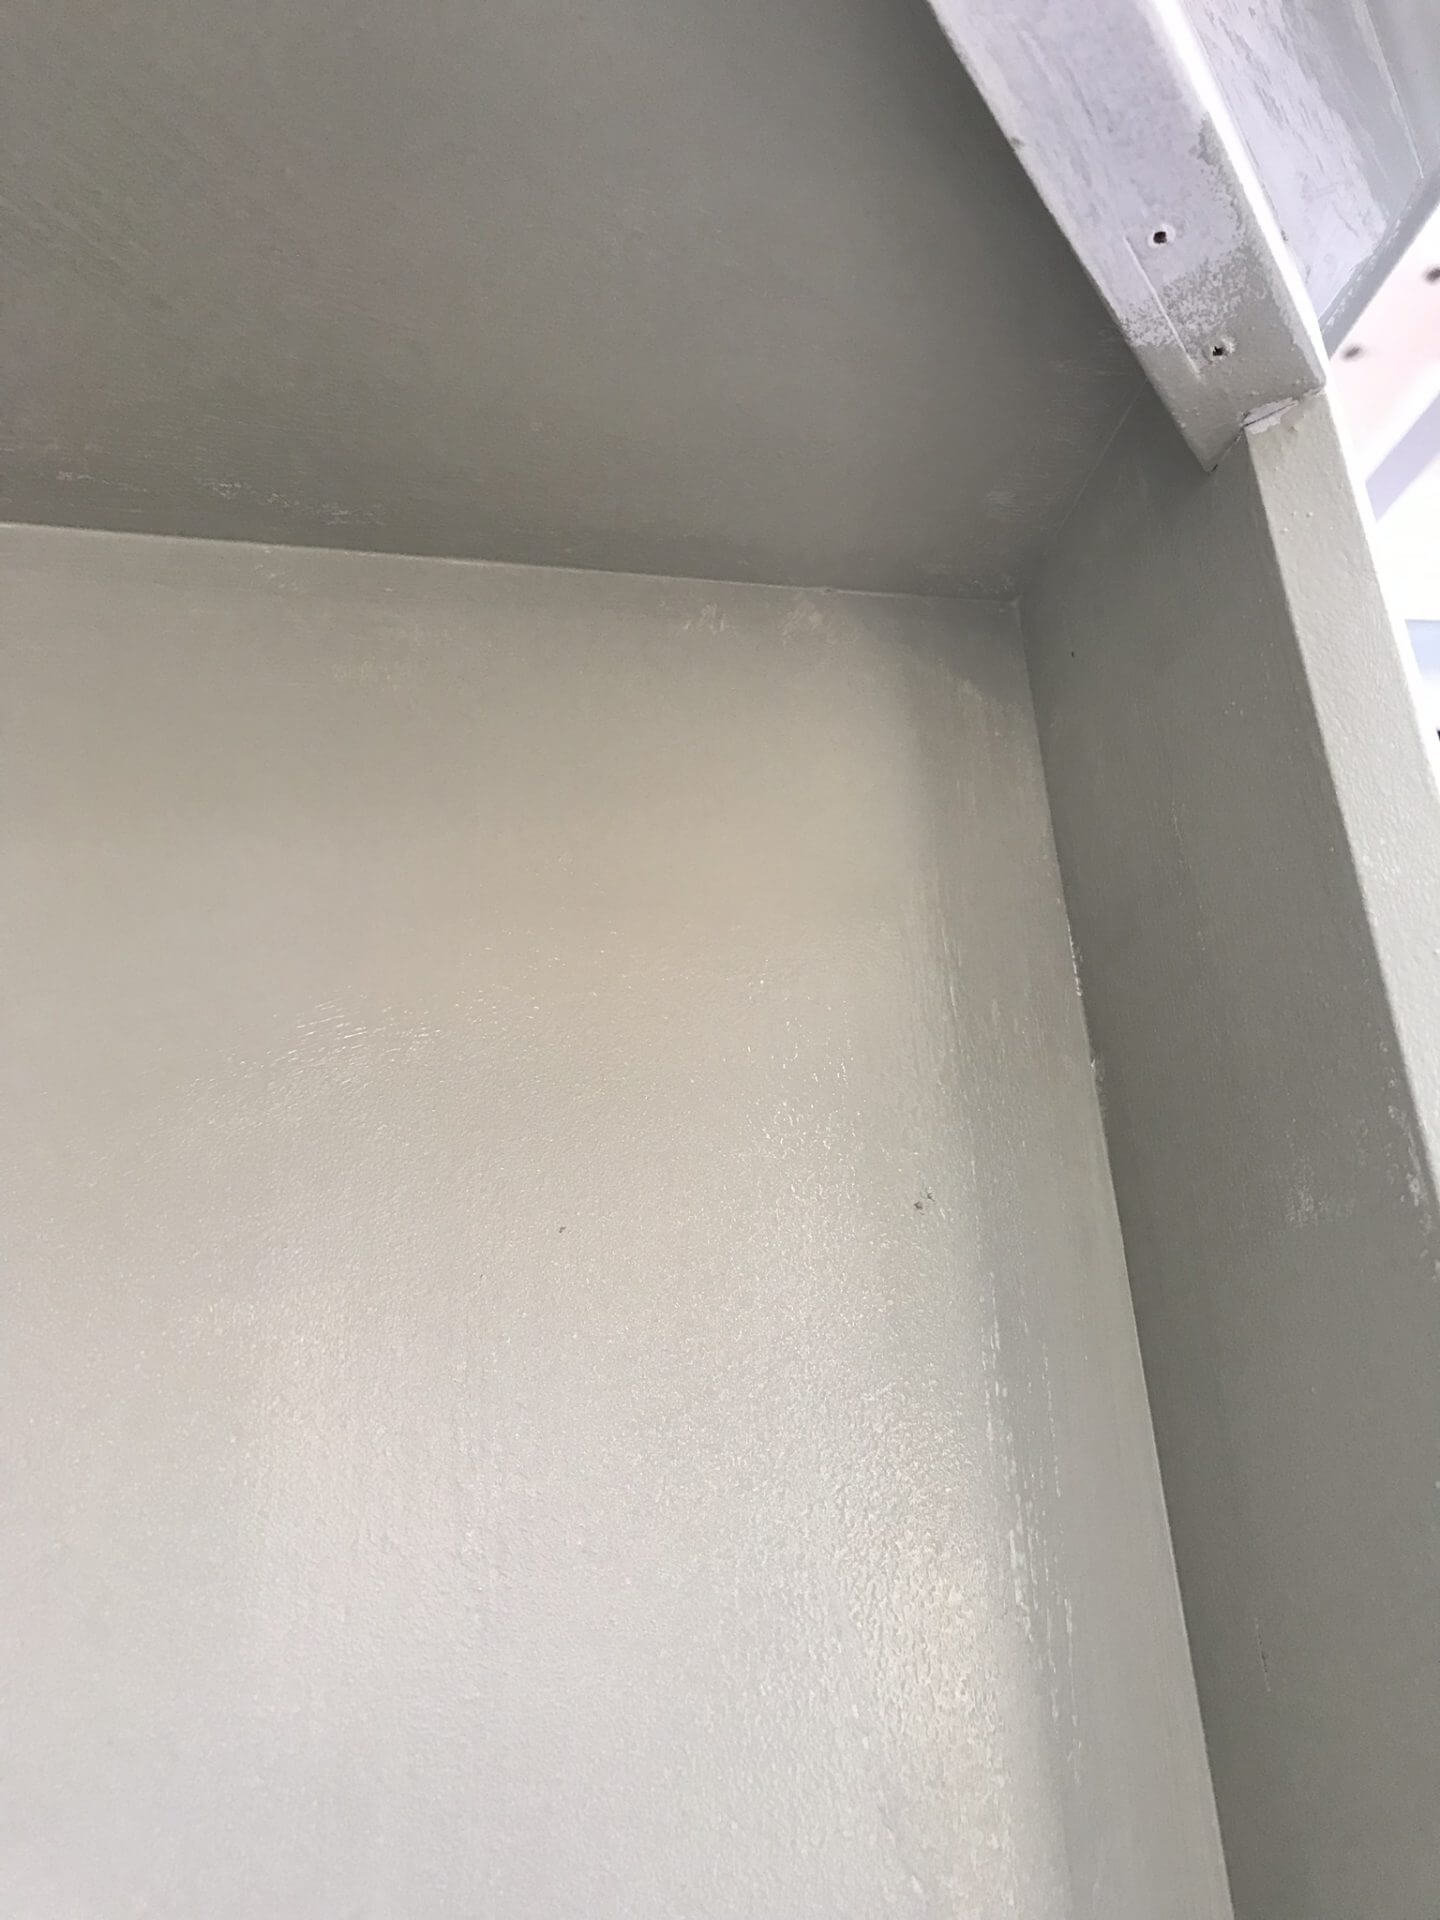 Picture showing where the paint was thin and patchy in some places.